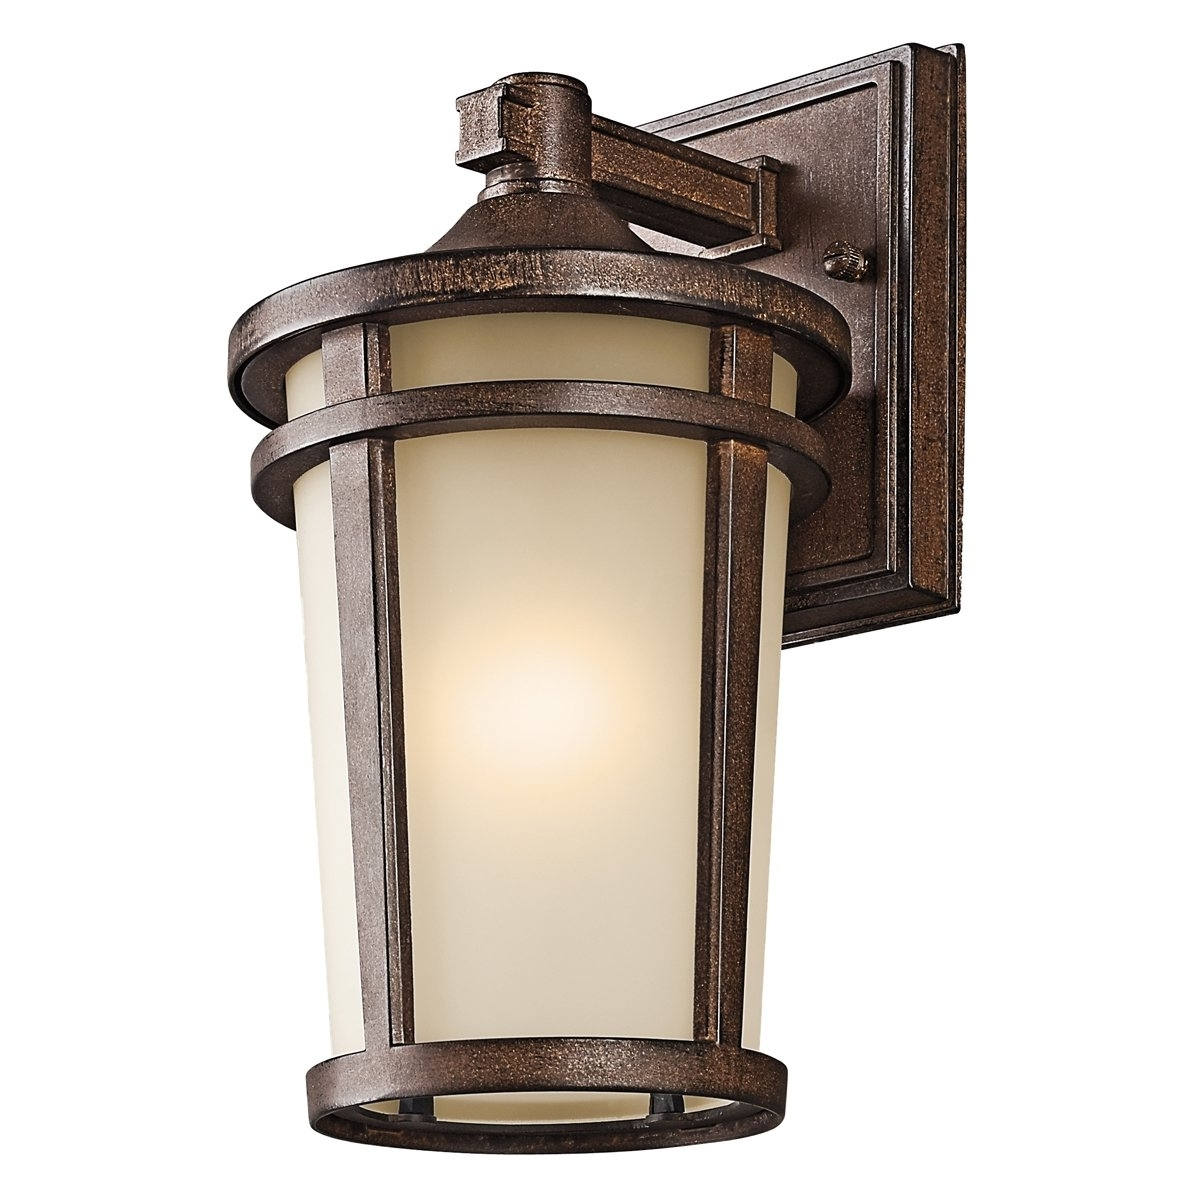 Rustic Outdoor Lighting At Wayfair Intended For Fashionable Modern Garden And Outdoor Lights From The Lighting Company (View 14 of 20)